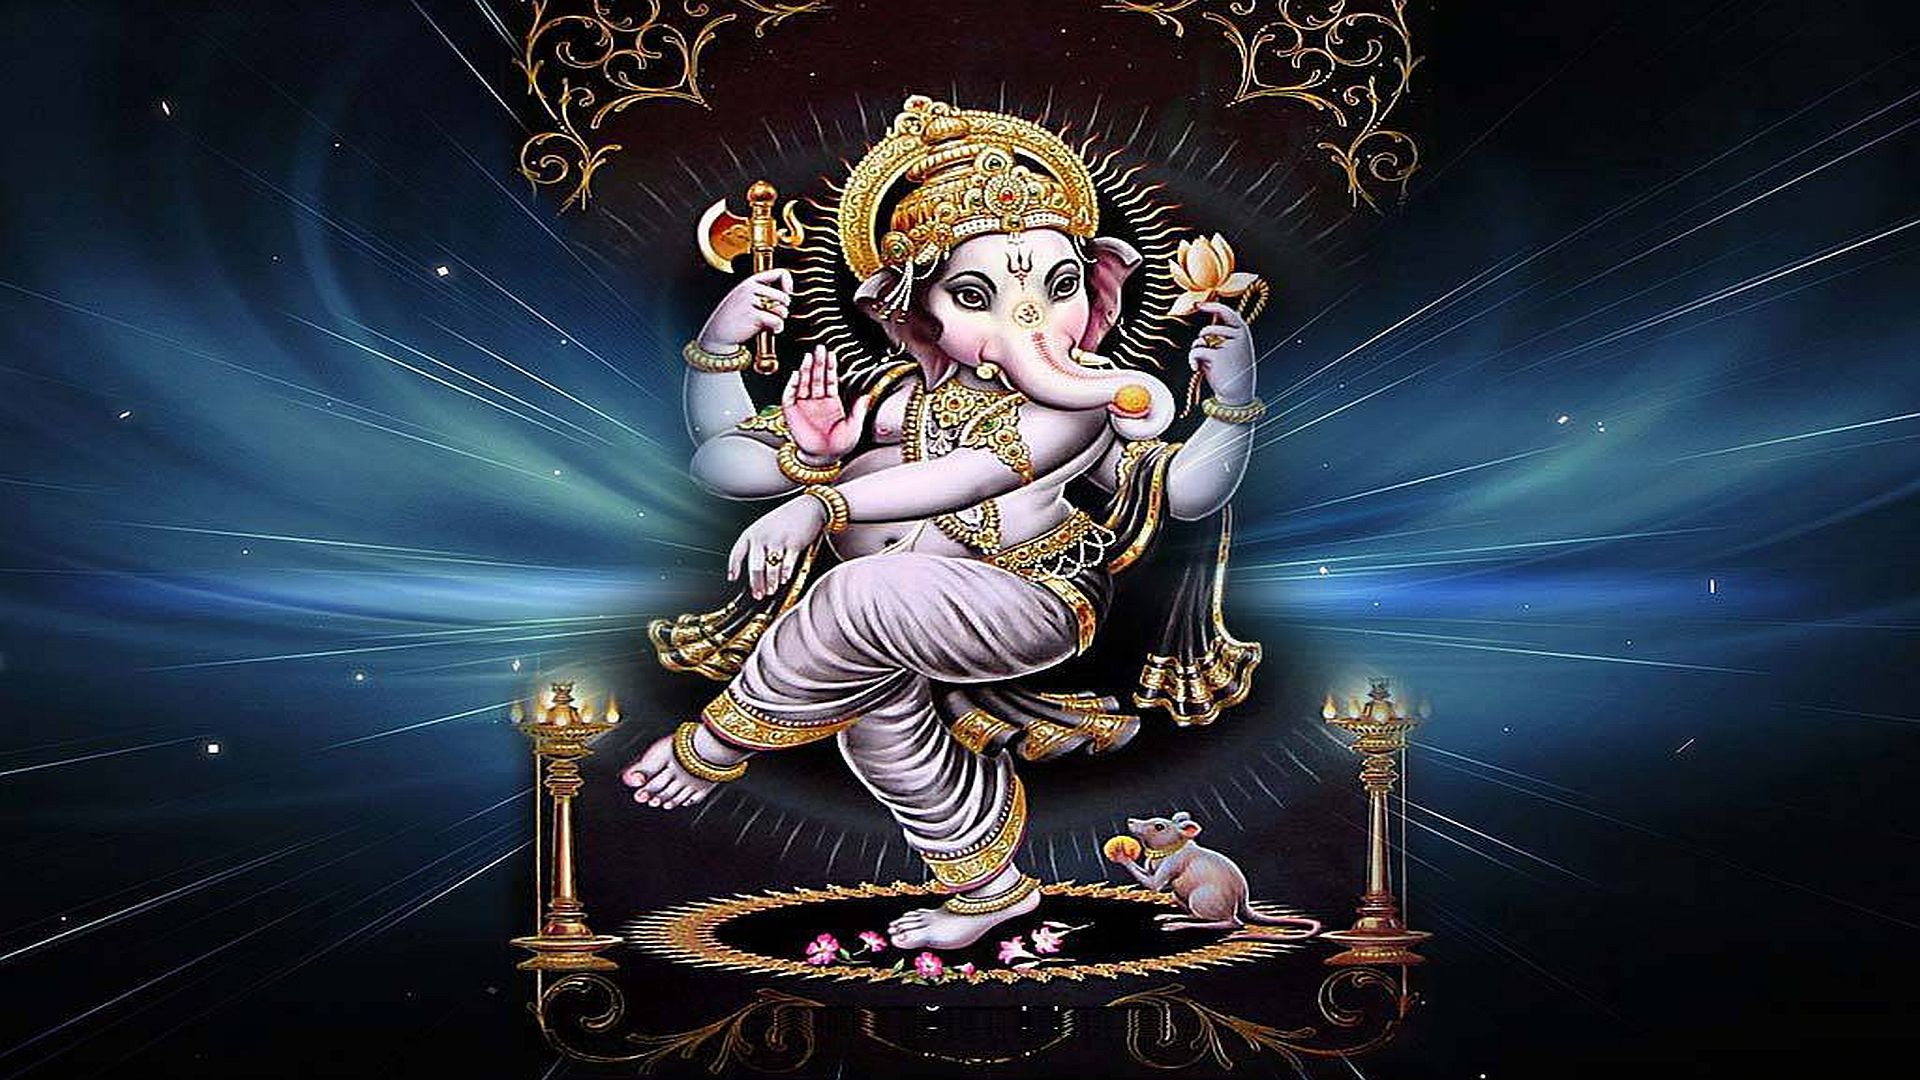 Ganesha Wallpaper Free Hd Download Hindu Gods And Goddesses